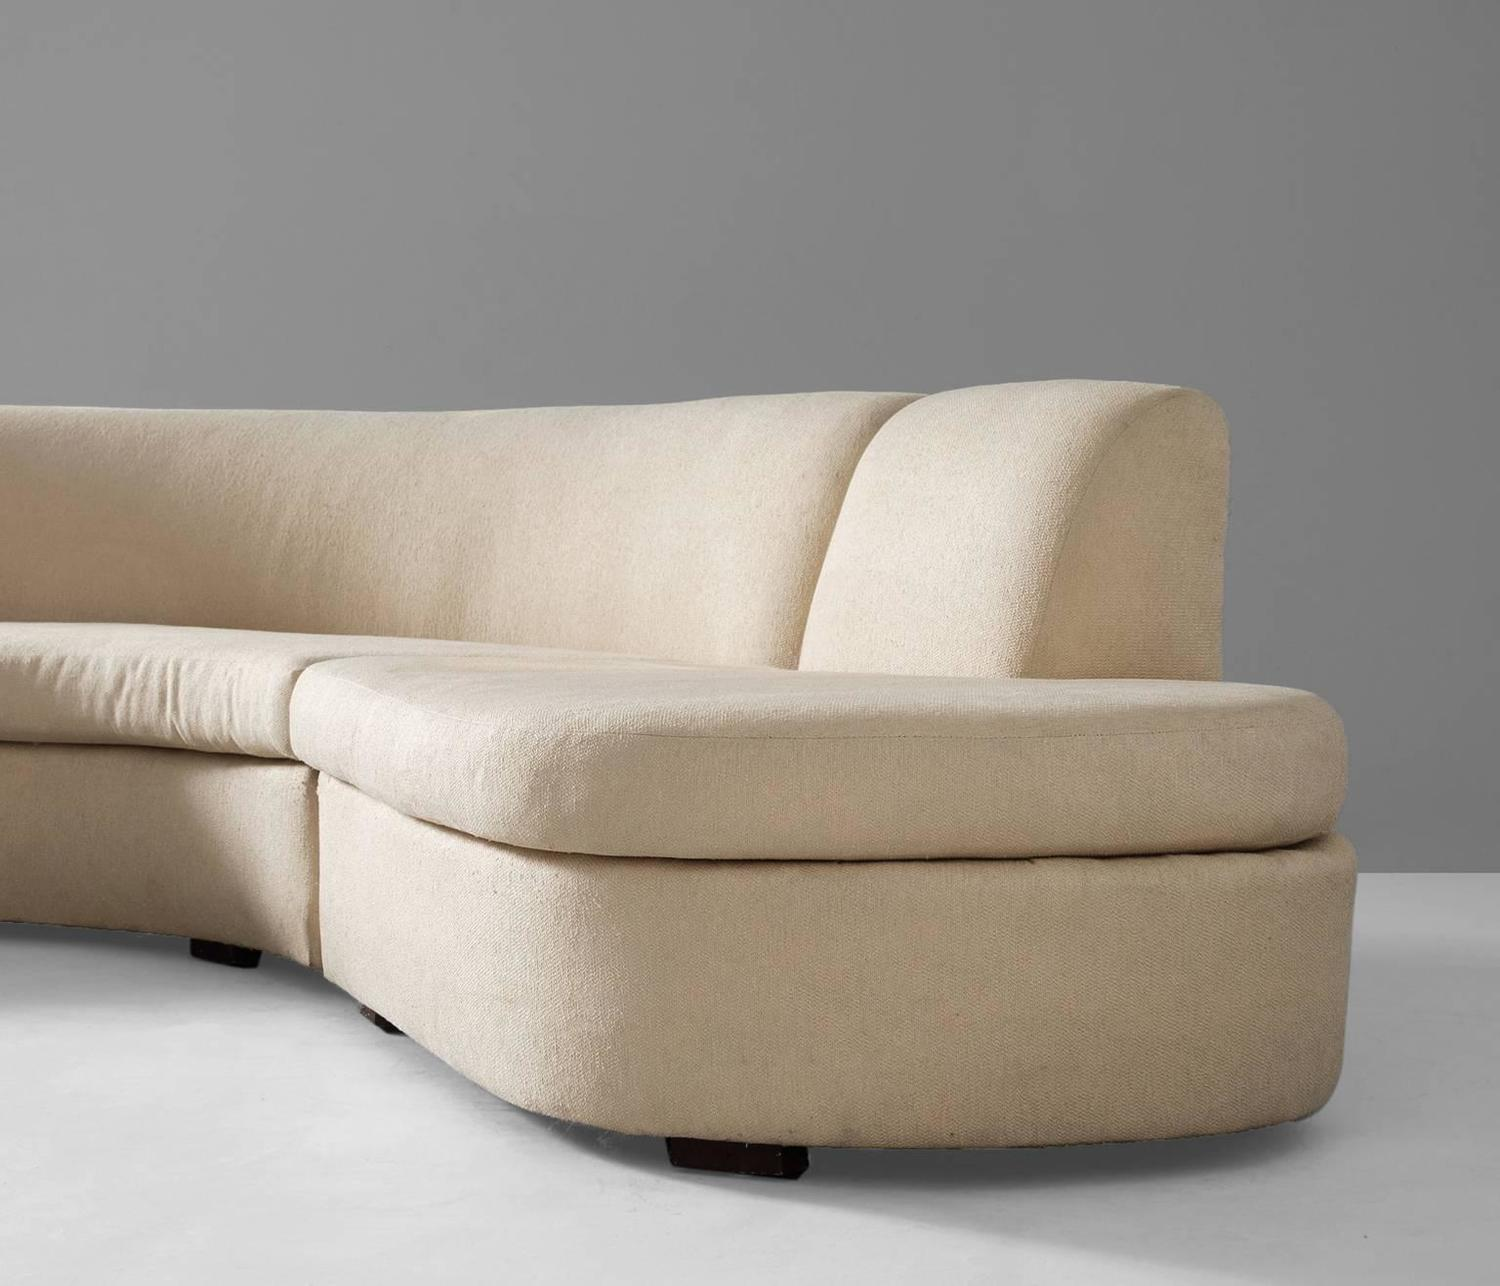 Large Curved Sofa For Sale At 1stdibs